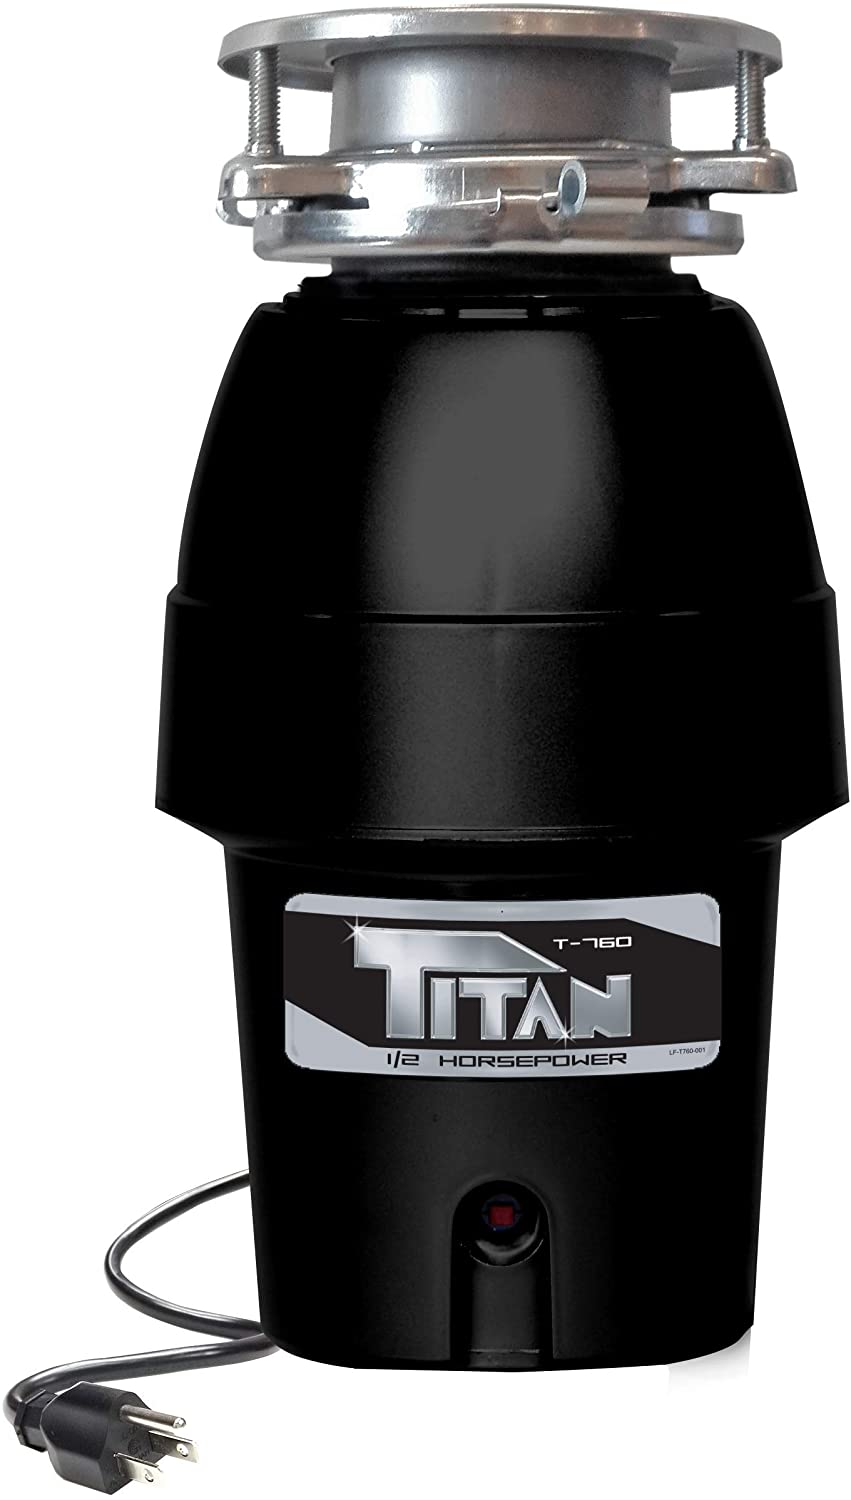 Titan 10-US-TN-760-3B Garbage Disposal, 1/2 HP - Mid Duty, Black with Stainless Steel Flange